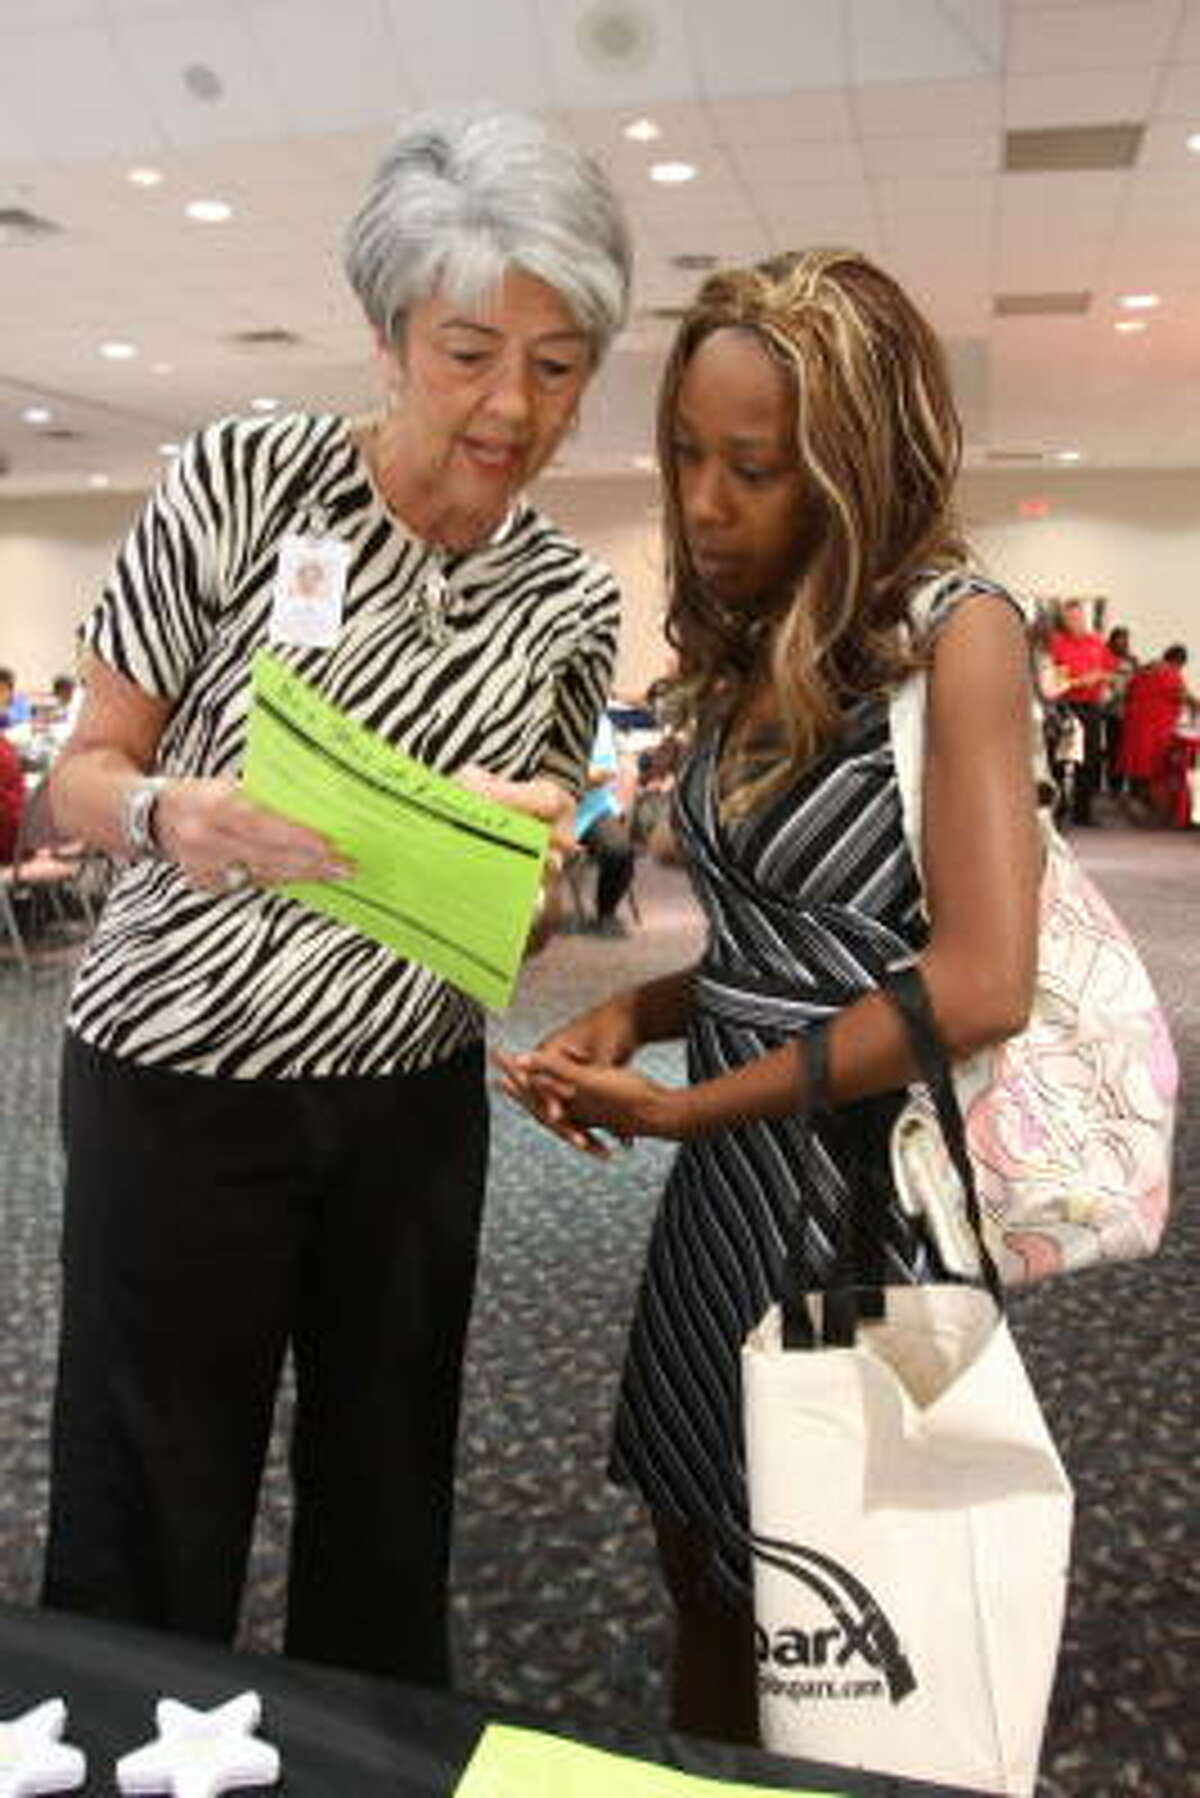 JOB FAIR: Fort Bend County held its third annual public sector career fair with other governmental agencies participating Sept. 29 at the Rosenberg Civic and Convention Center, 3825 Texas 36 S. Judy Adamson, human resource specialist for Lamar Consolidated Independent School District, shows a list of job openings at the district to Viviana Guerra of Rosenberg.